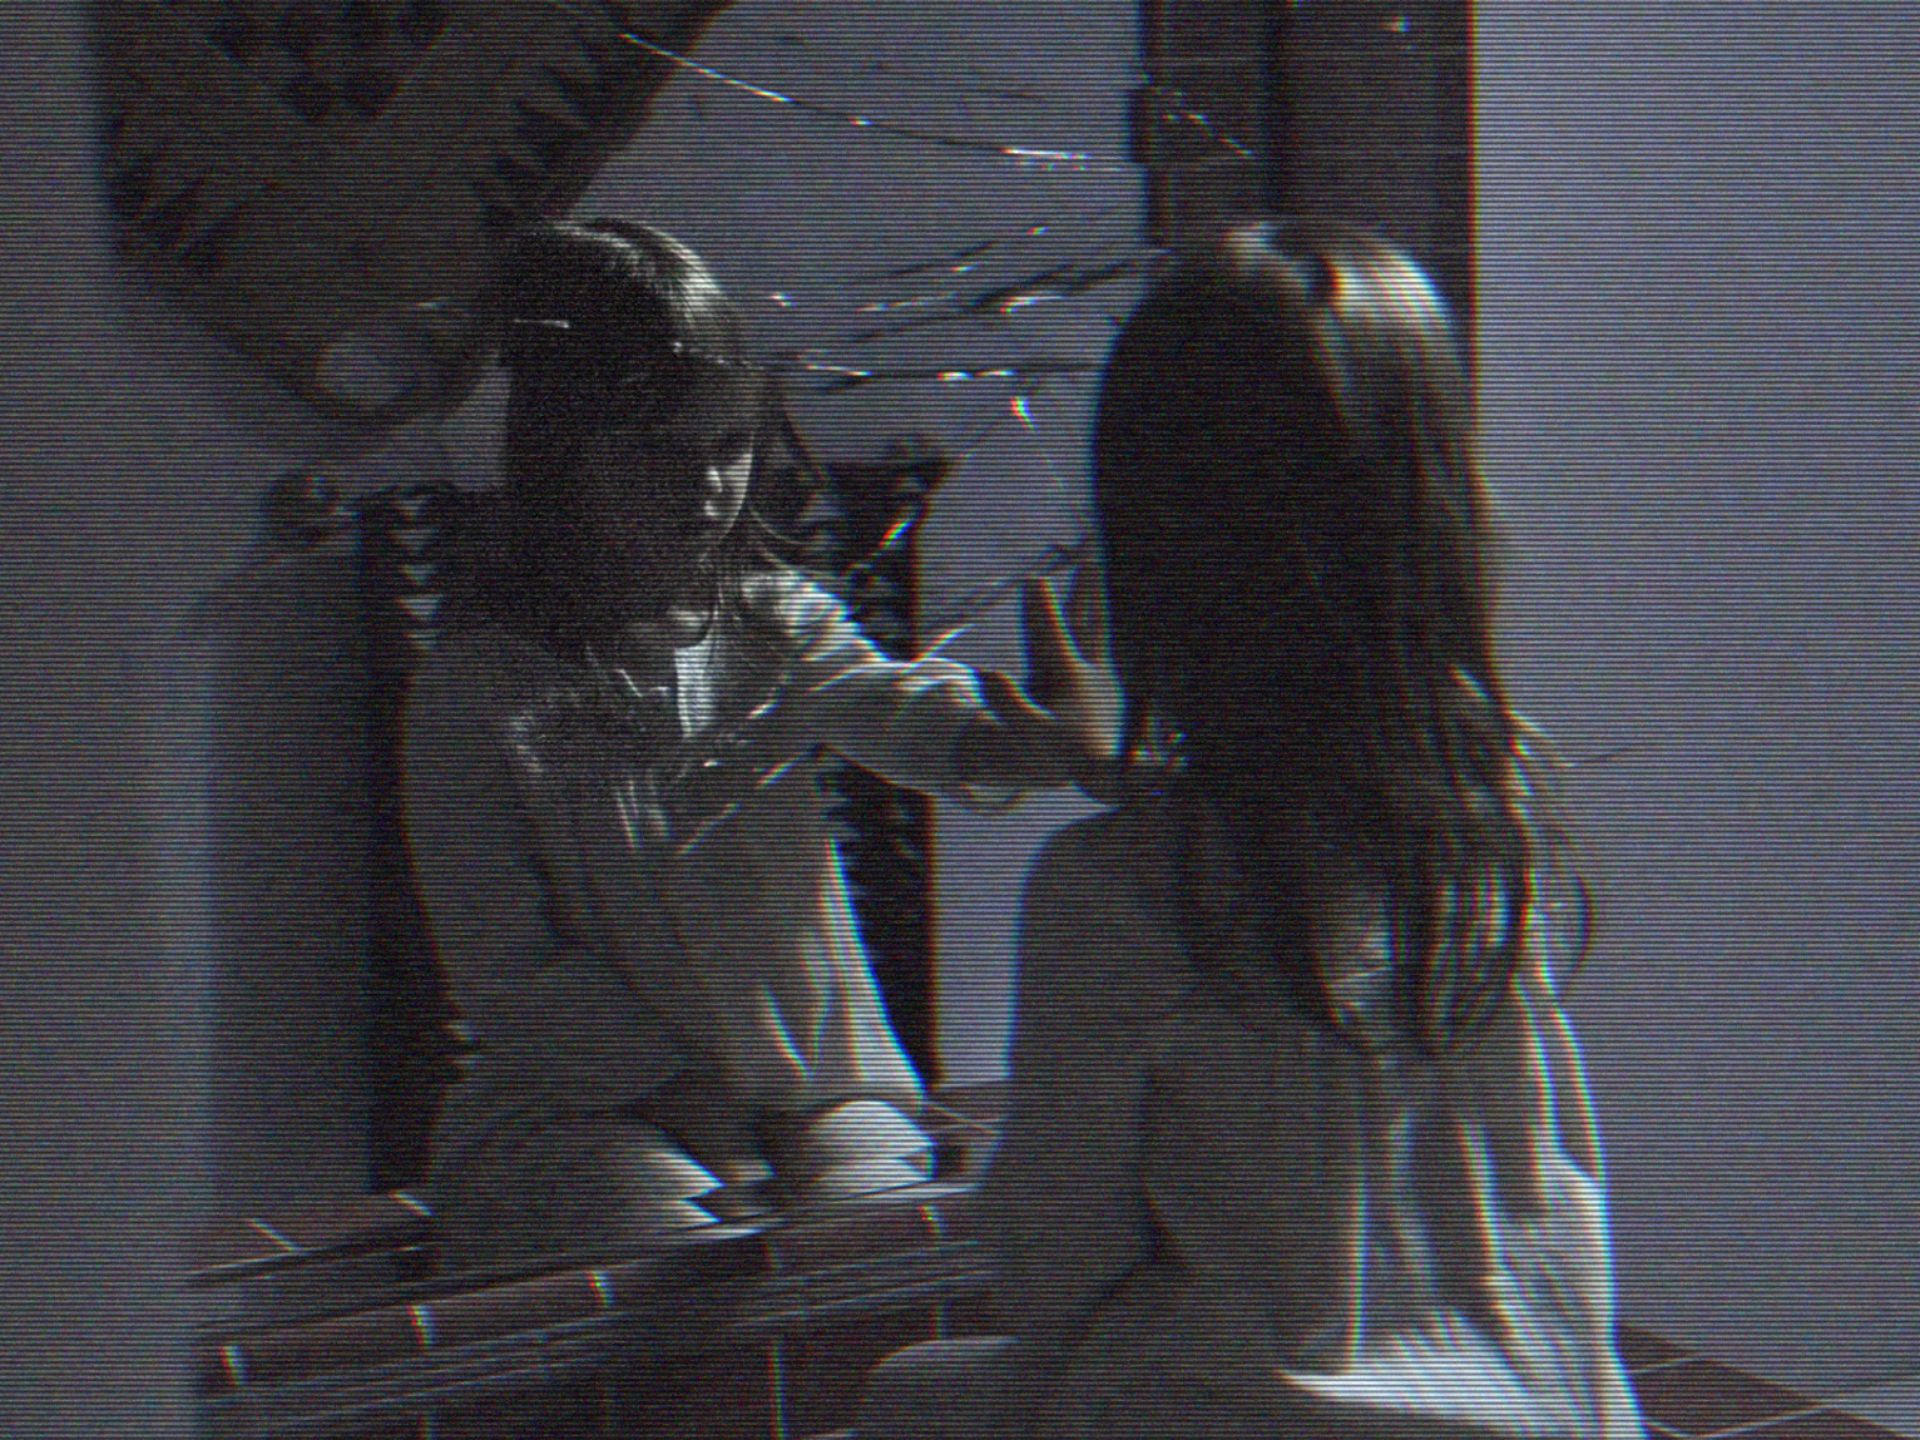 Paramount Sets a 'Paranormal Activity 7' Release Date for 2021